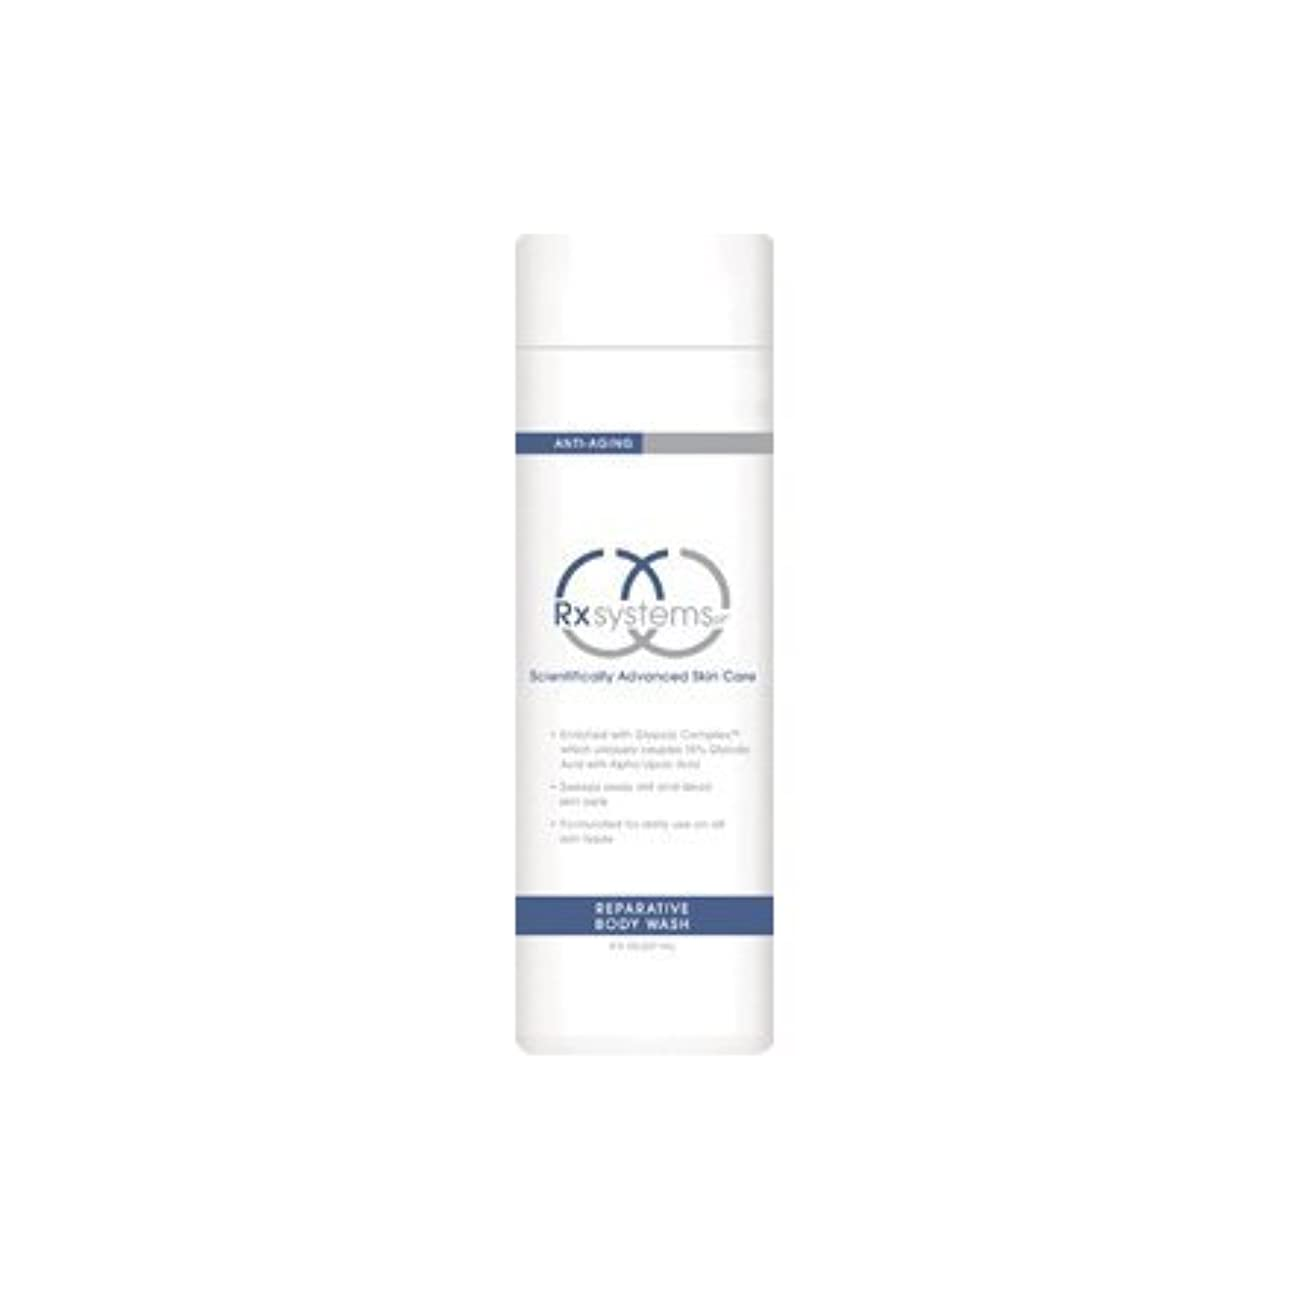 劣る値下げハンバーガーRx Systems Reparative Body Wash by Rx Systems